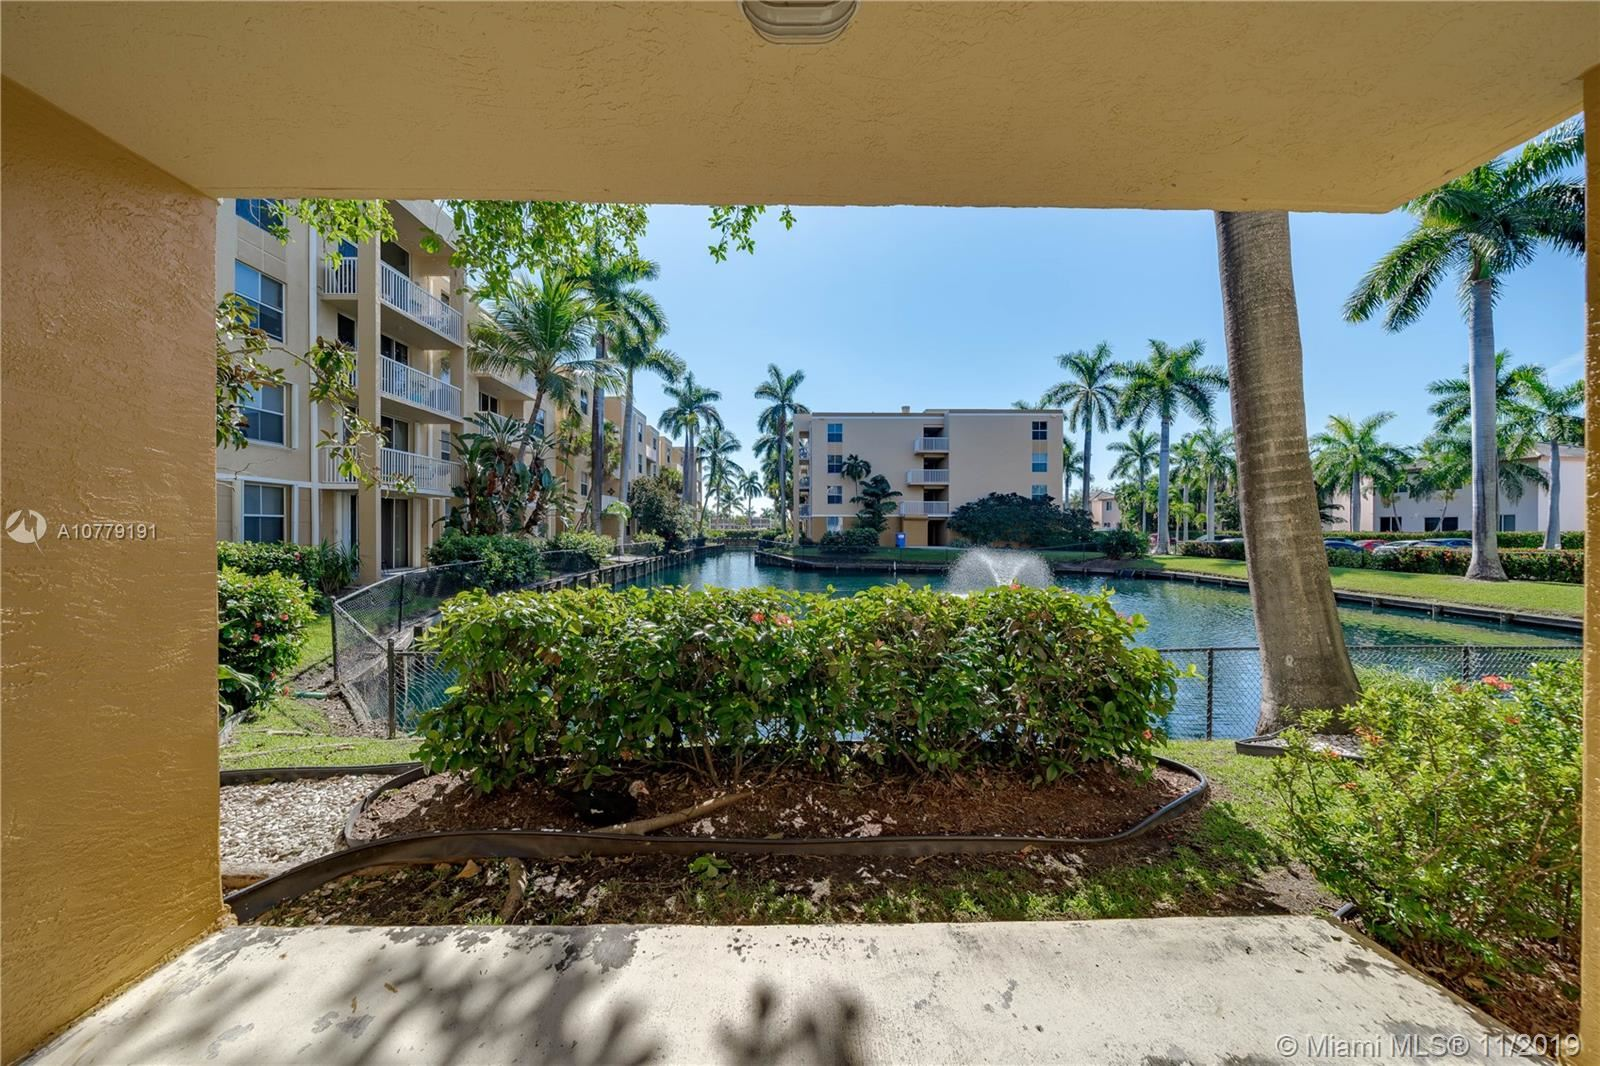 Photo of 1341 SE 3rd Ave #106, Dania Beach, FL 33004 (MLS # A10779191)